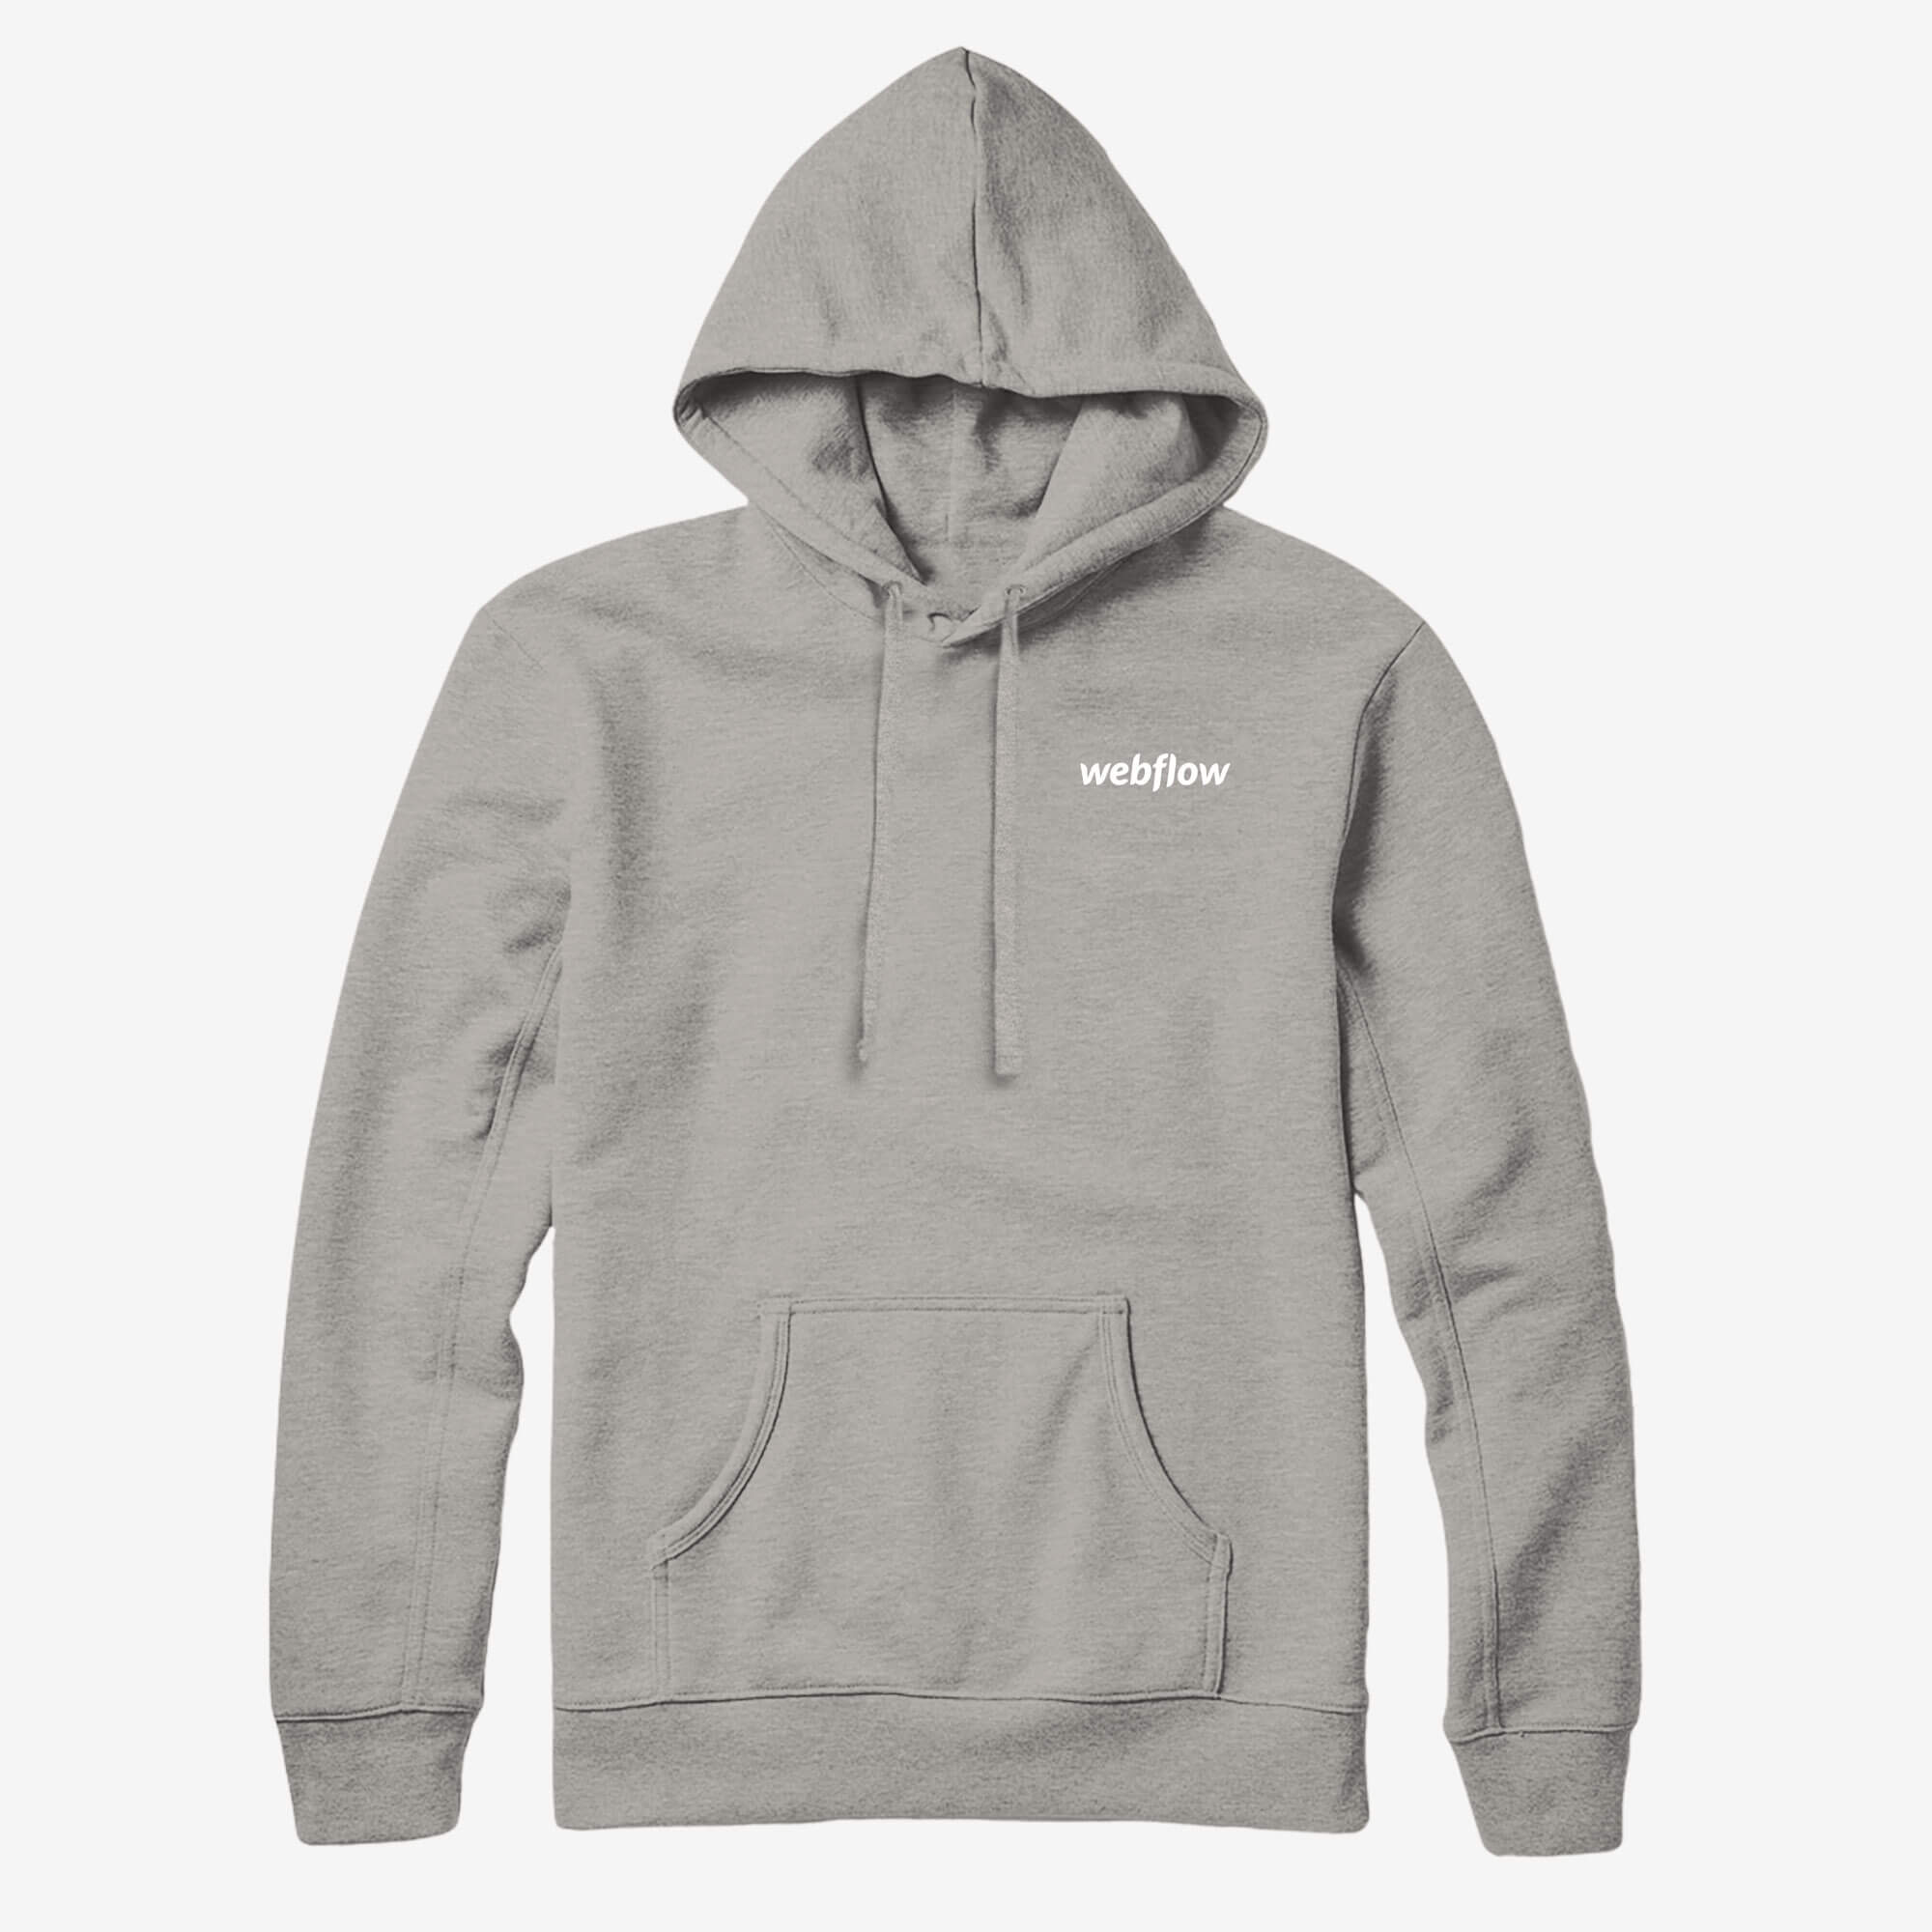 A hooded sweatshirt with a front pocket, white draw strings and a small Webflow logo in the upper right corner.